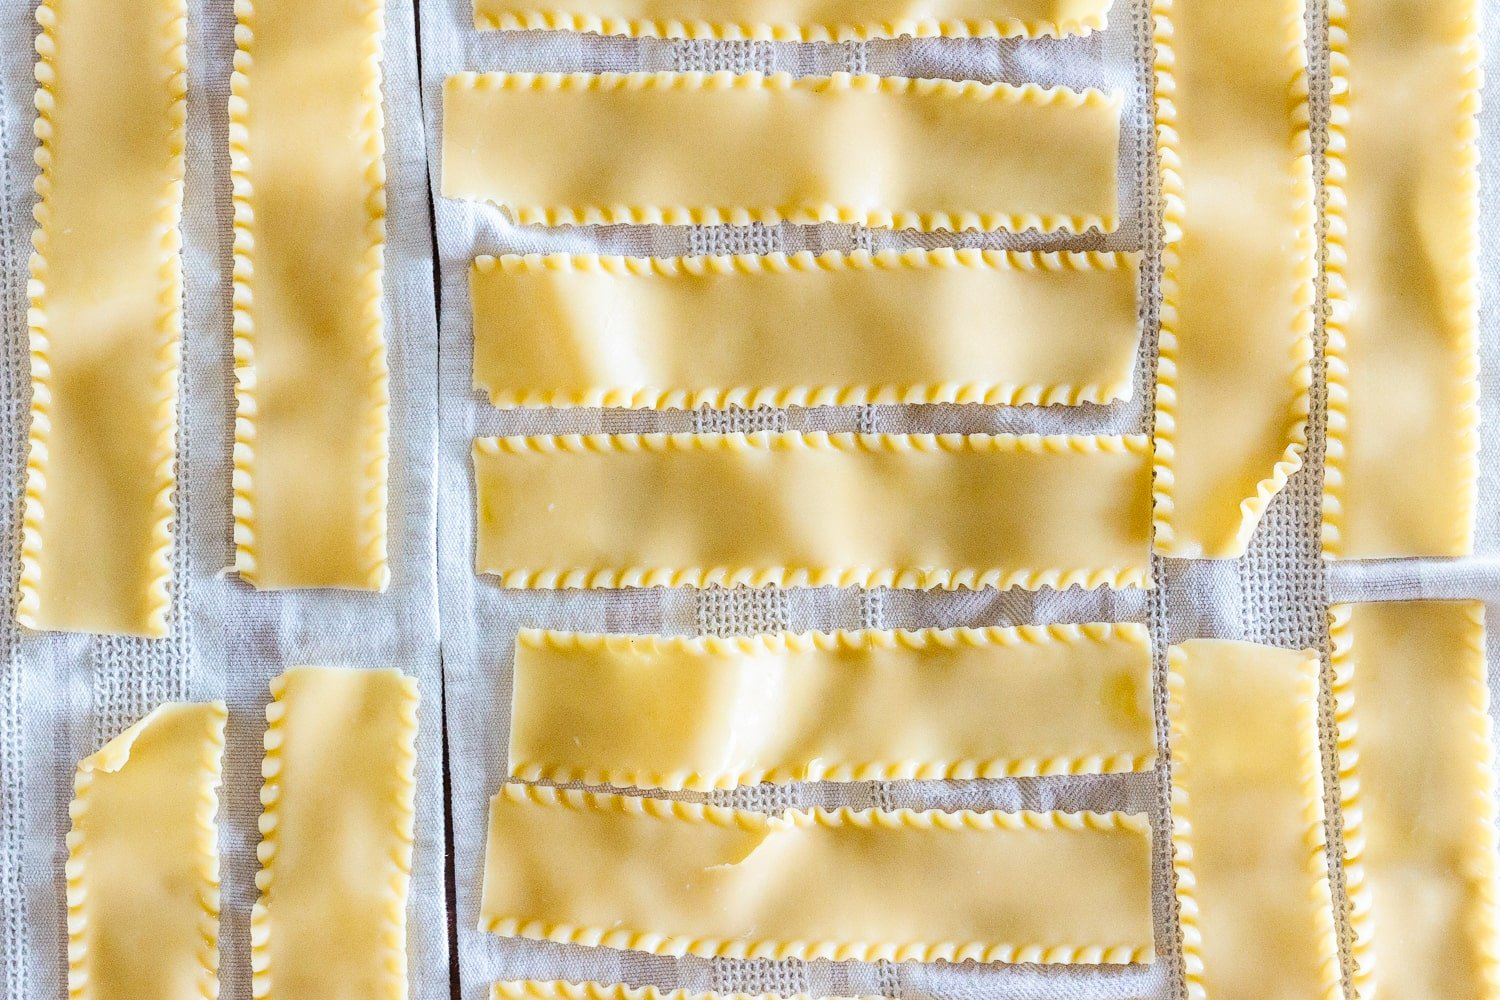 Cooked lasagna noodles laid out on dish towels.